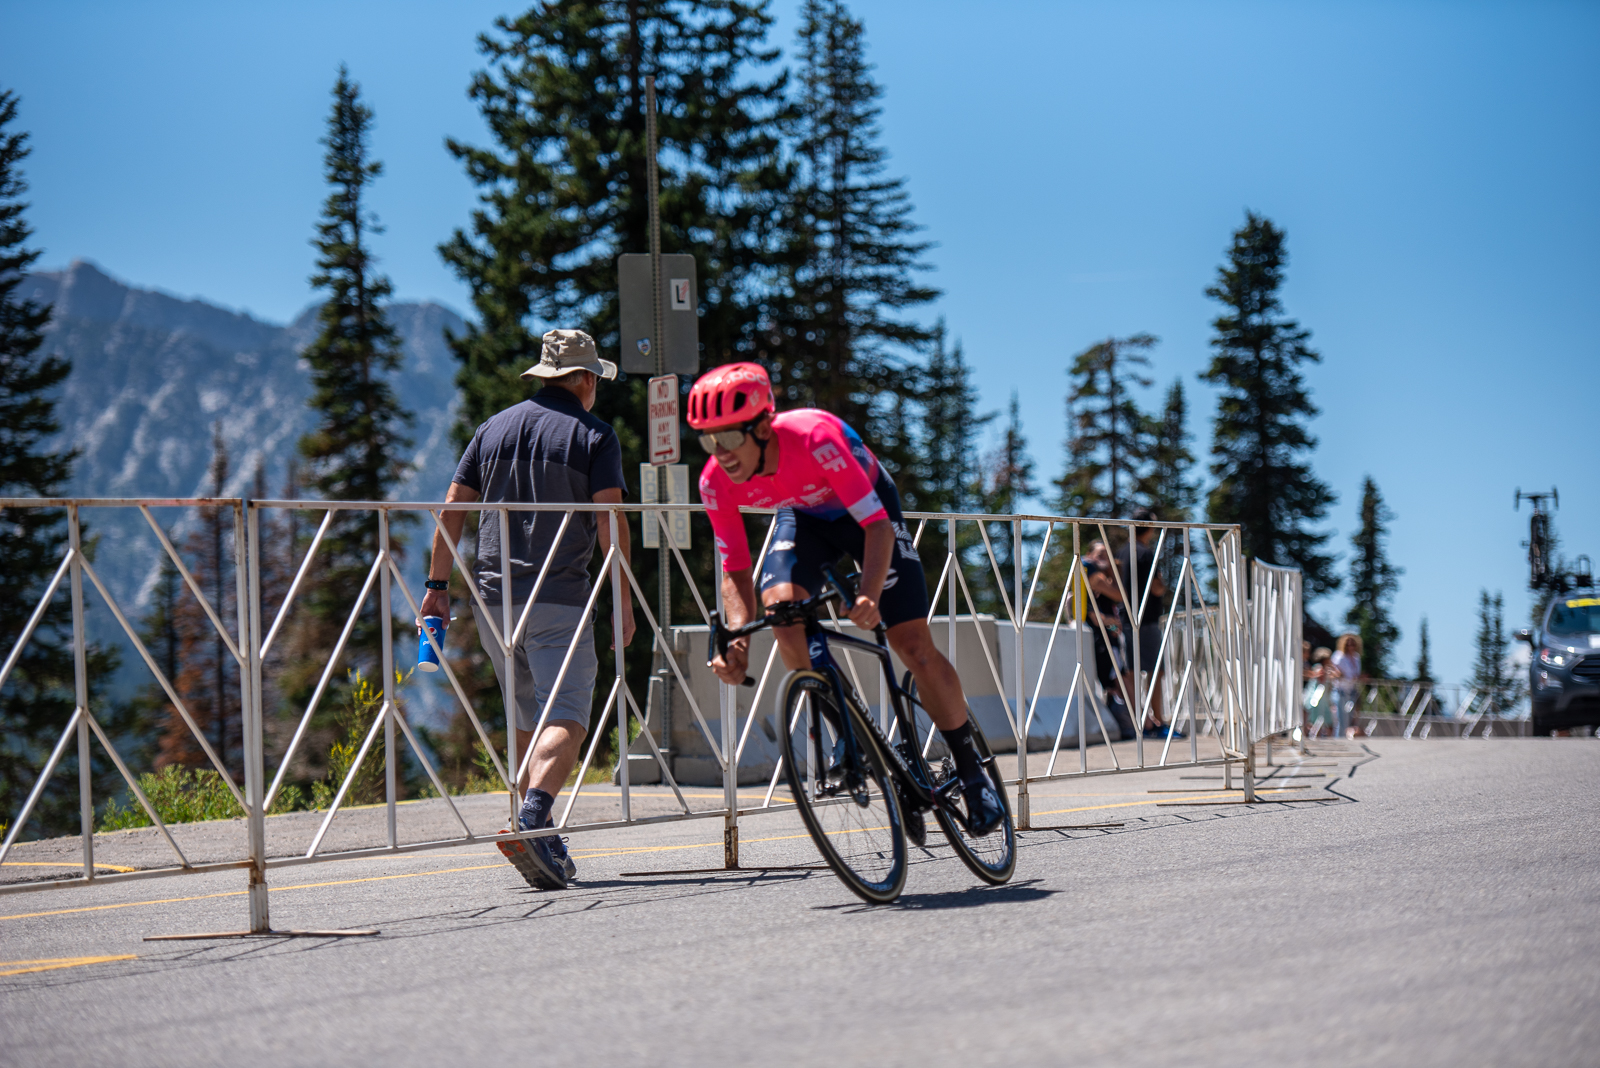 Lawson Craddock (EF Education First) on his way to a 2nd place finish in the Prologue time trial. 2019 Tour of Utah. Photo by Steven L. Sheffield